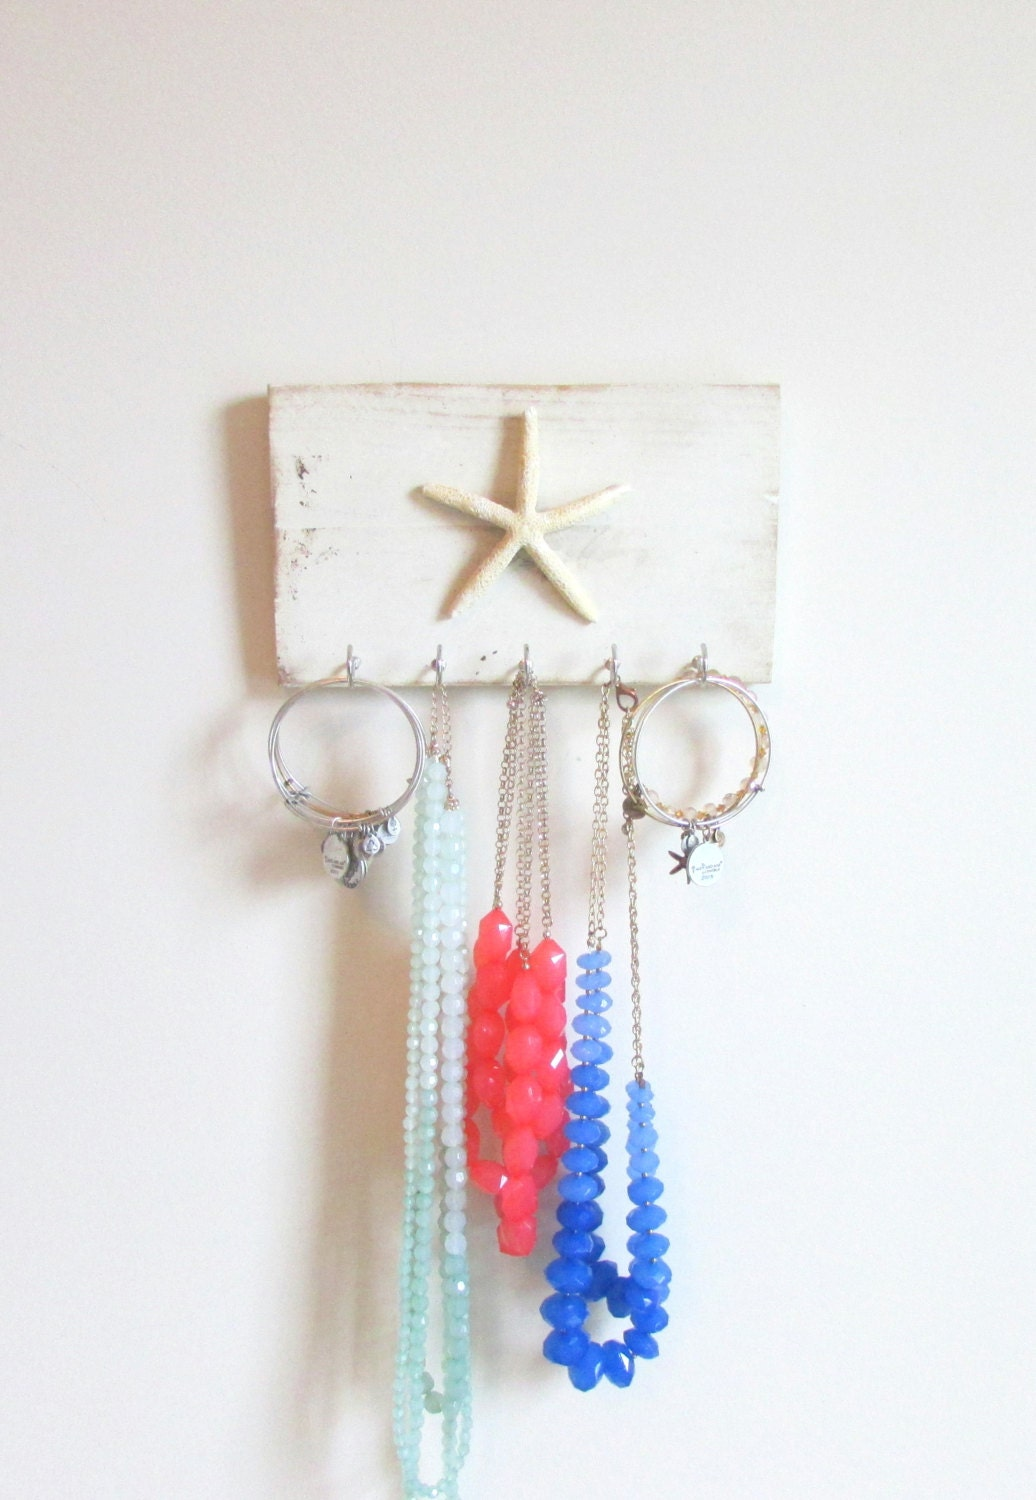 Key Holder Necklace Holder Home Decor By Thehopestack On Etsy